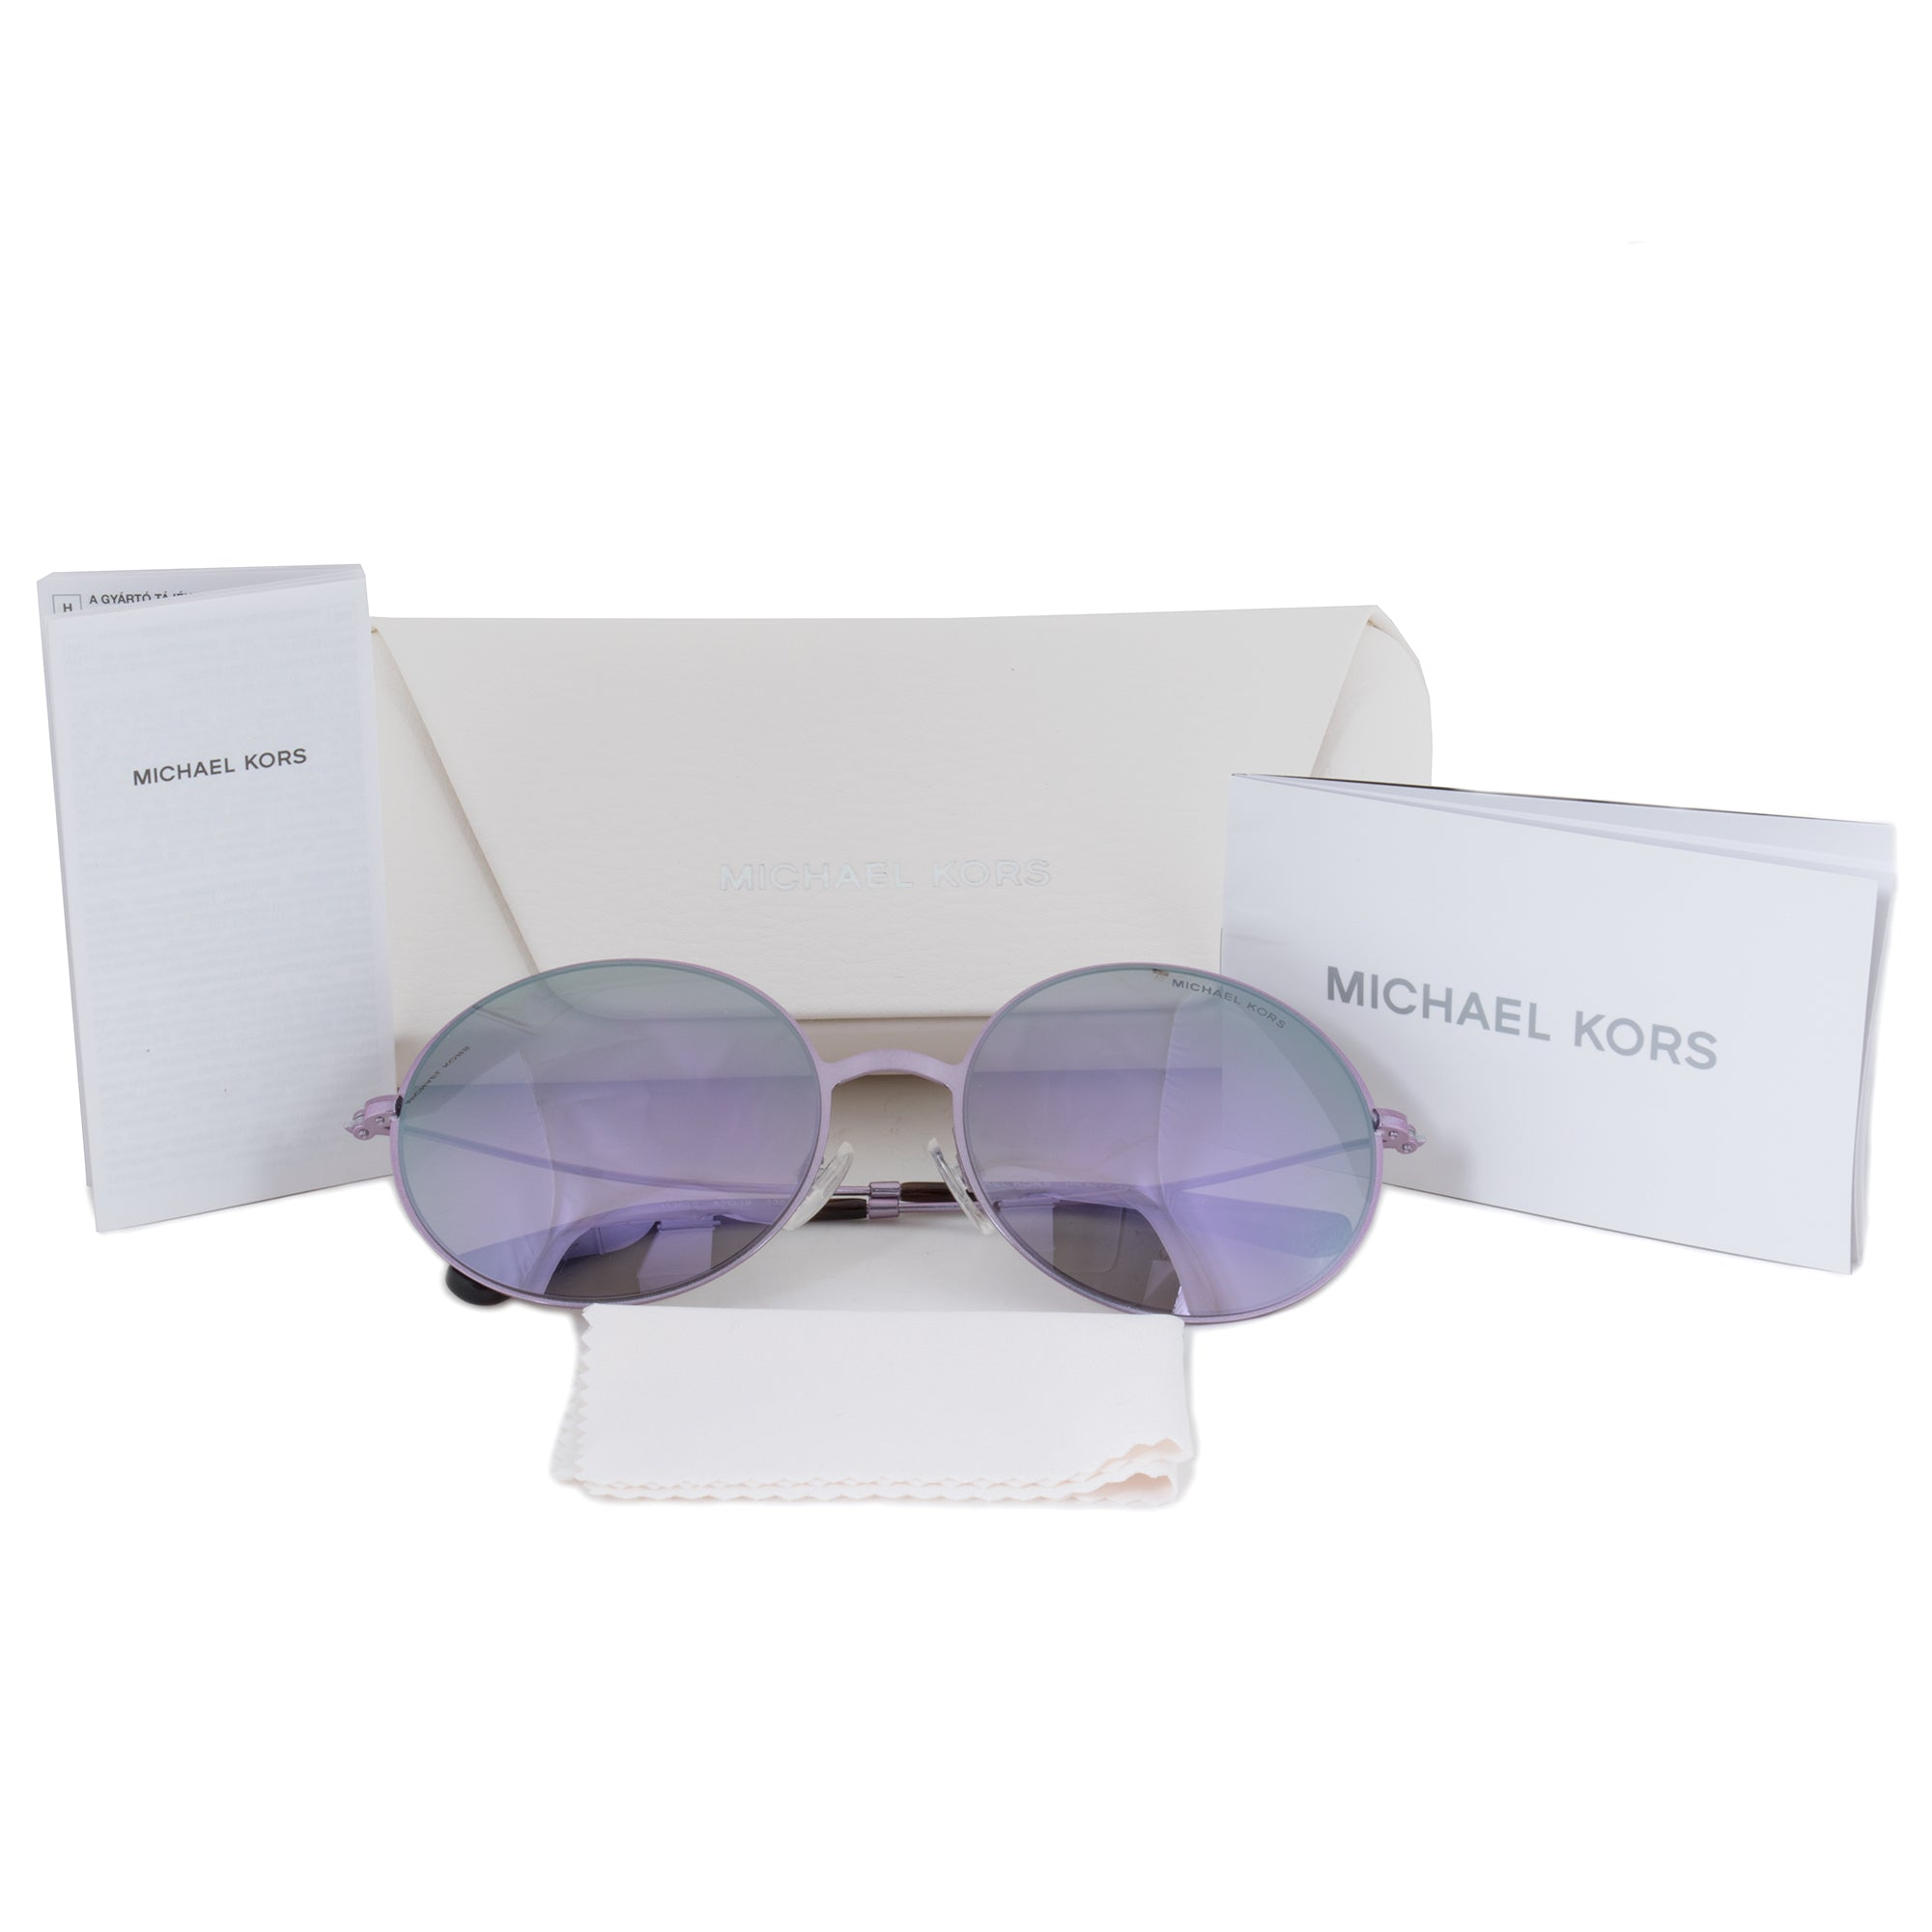 Michael Kors Kendall ll Round Sunglasses MK5017 113825 55 | Purple Glitter Frame | Purple Mirror Lenses